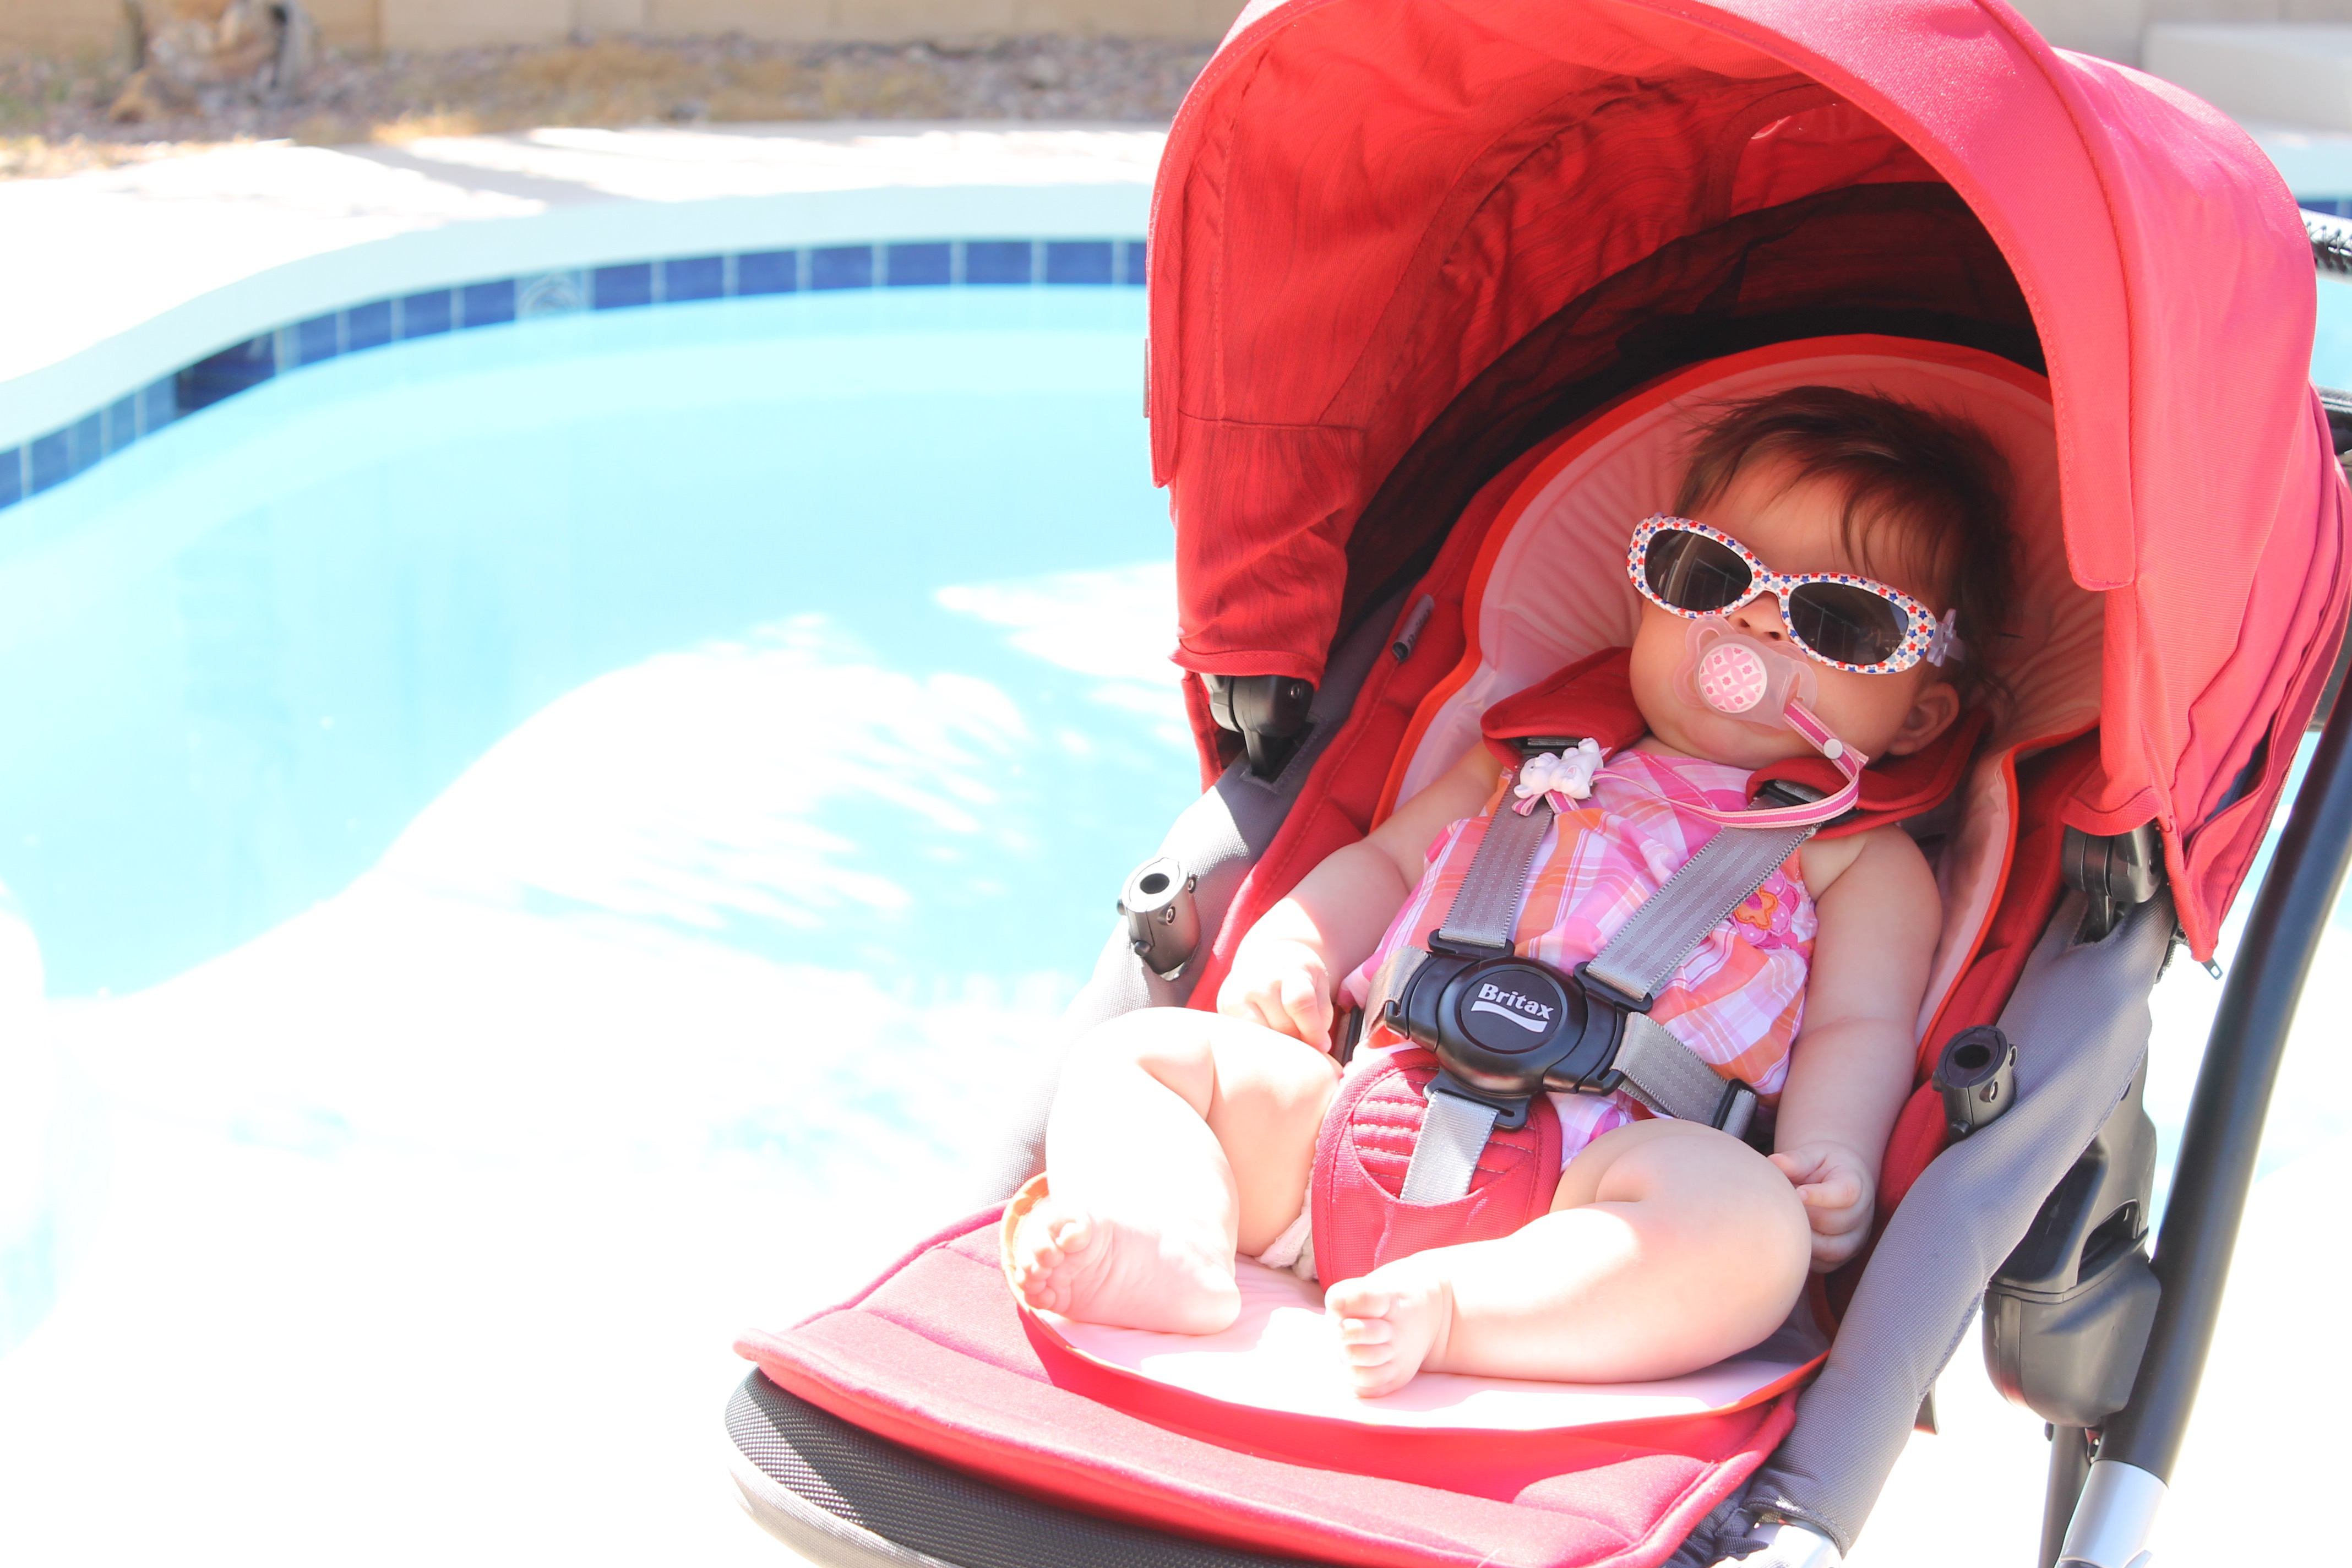 Geleeo Cooling Pad for Babies